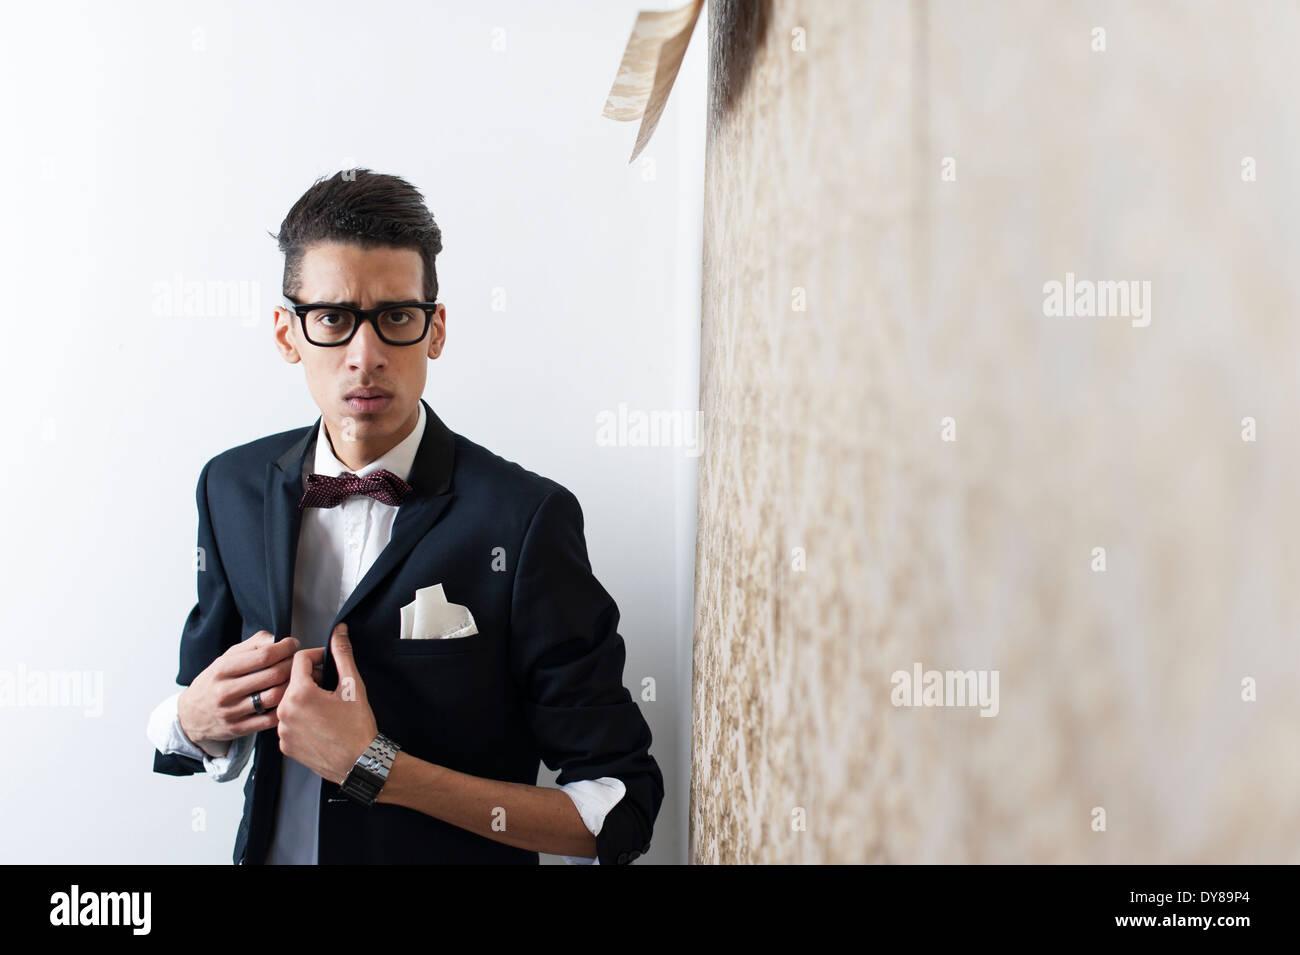 Young man wearing suit and glasses - Stock Image